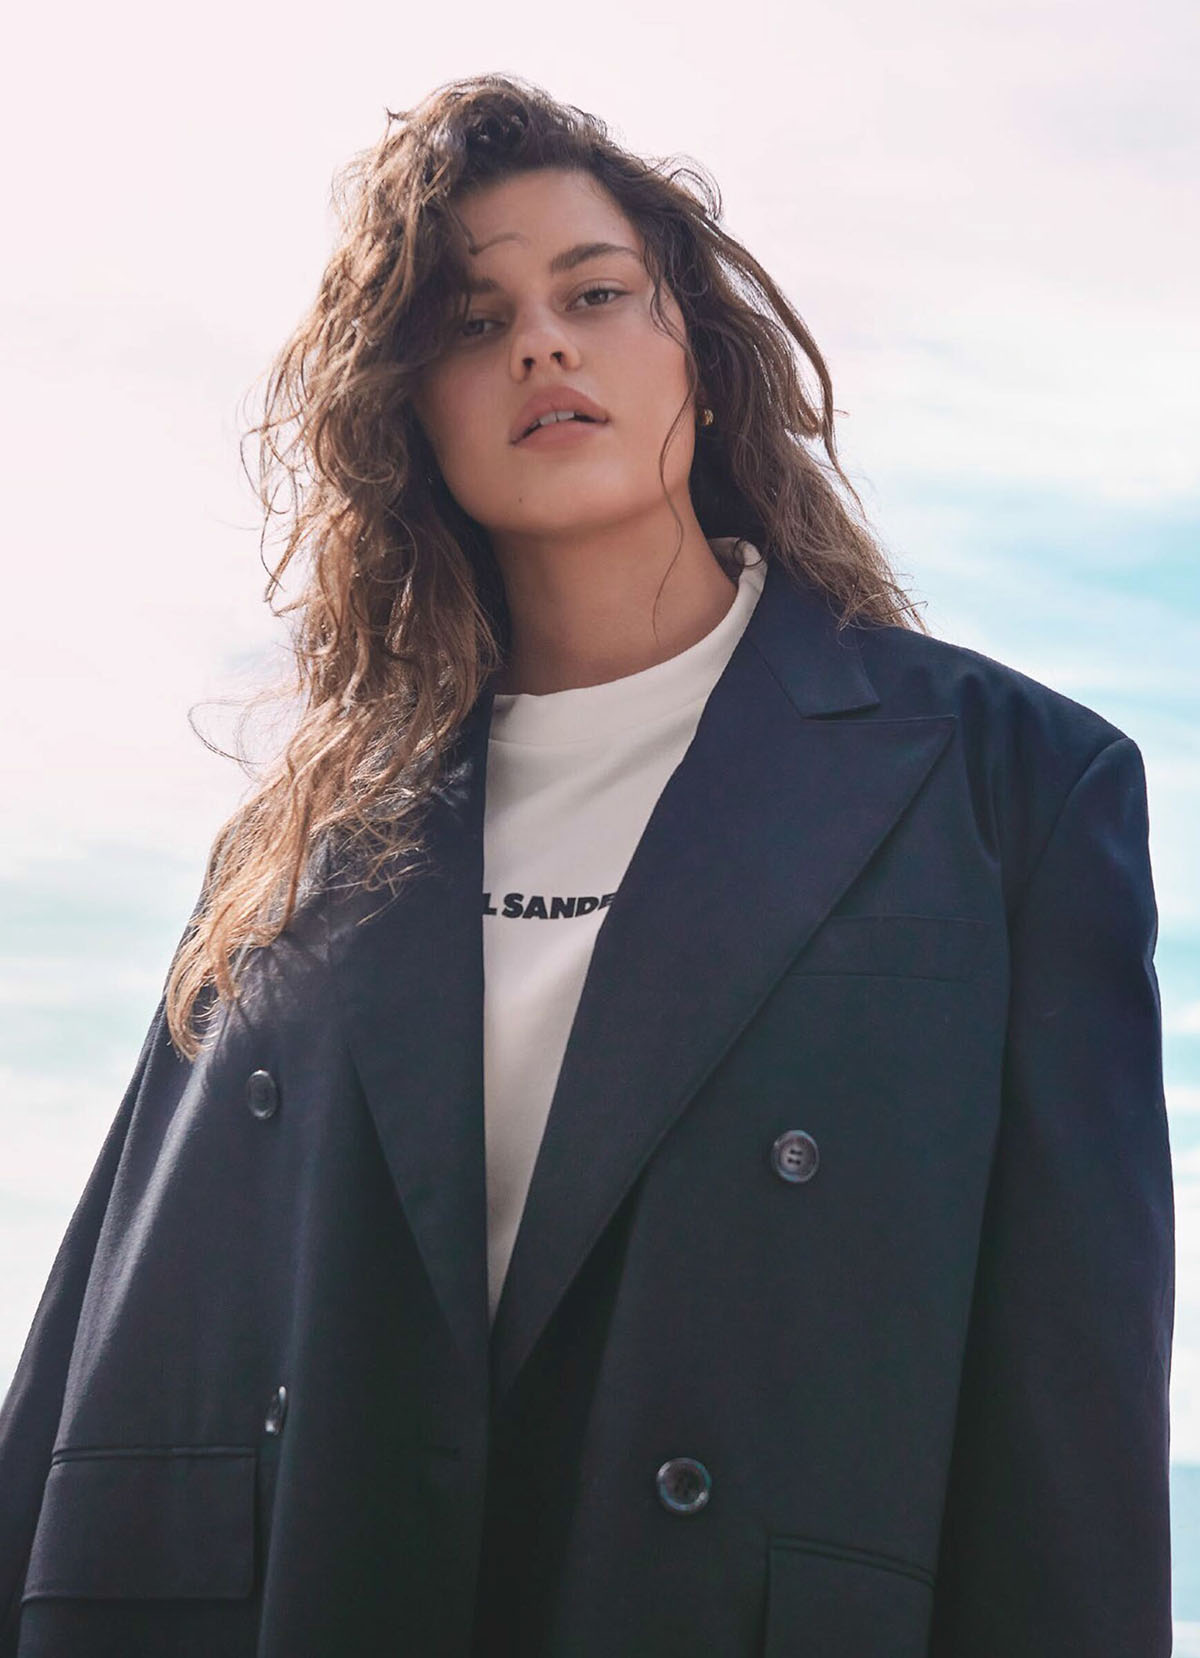 Jasmine O'Neill by Holly Ward for Marie Claire Australia July 2021